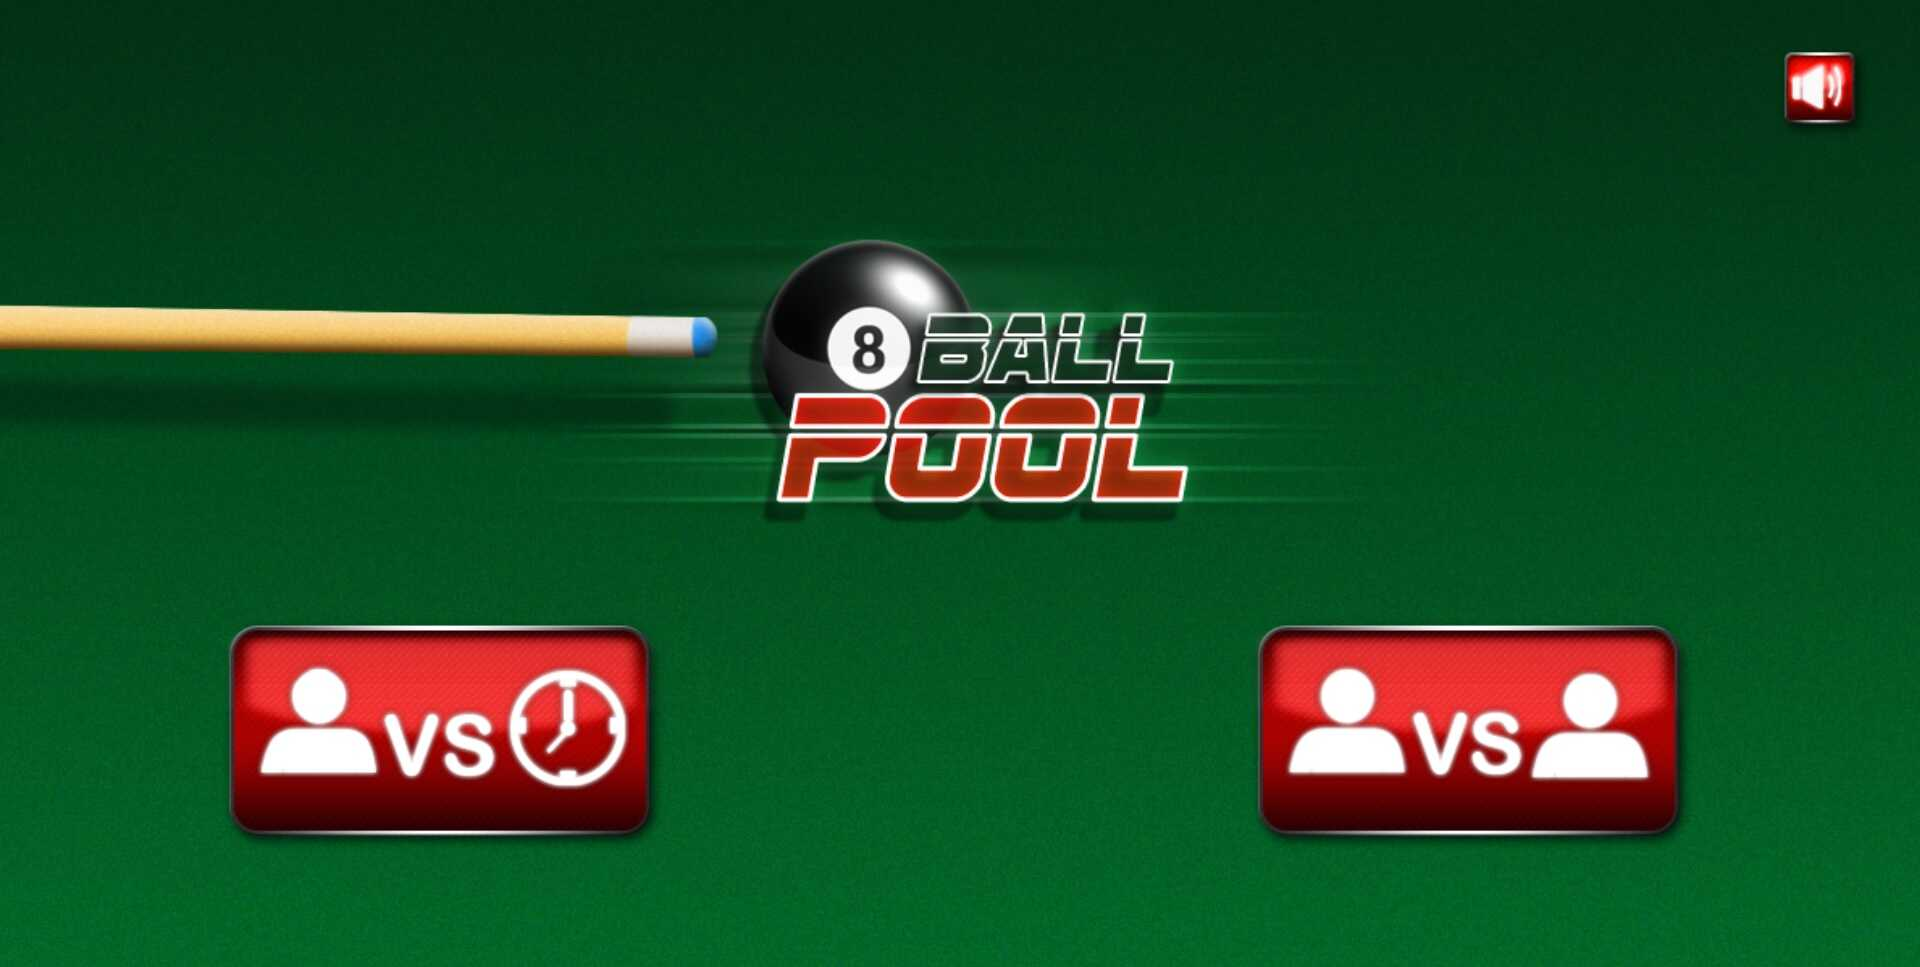 Image 8 Ball Pool